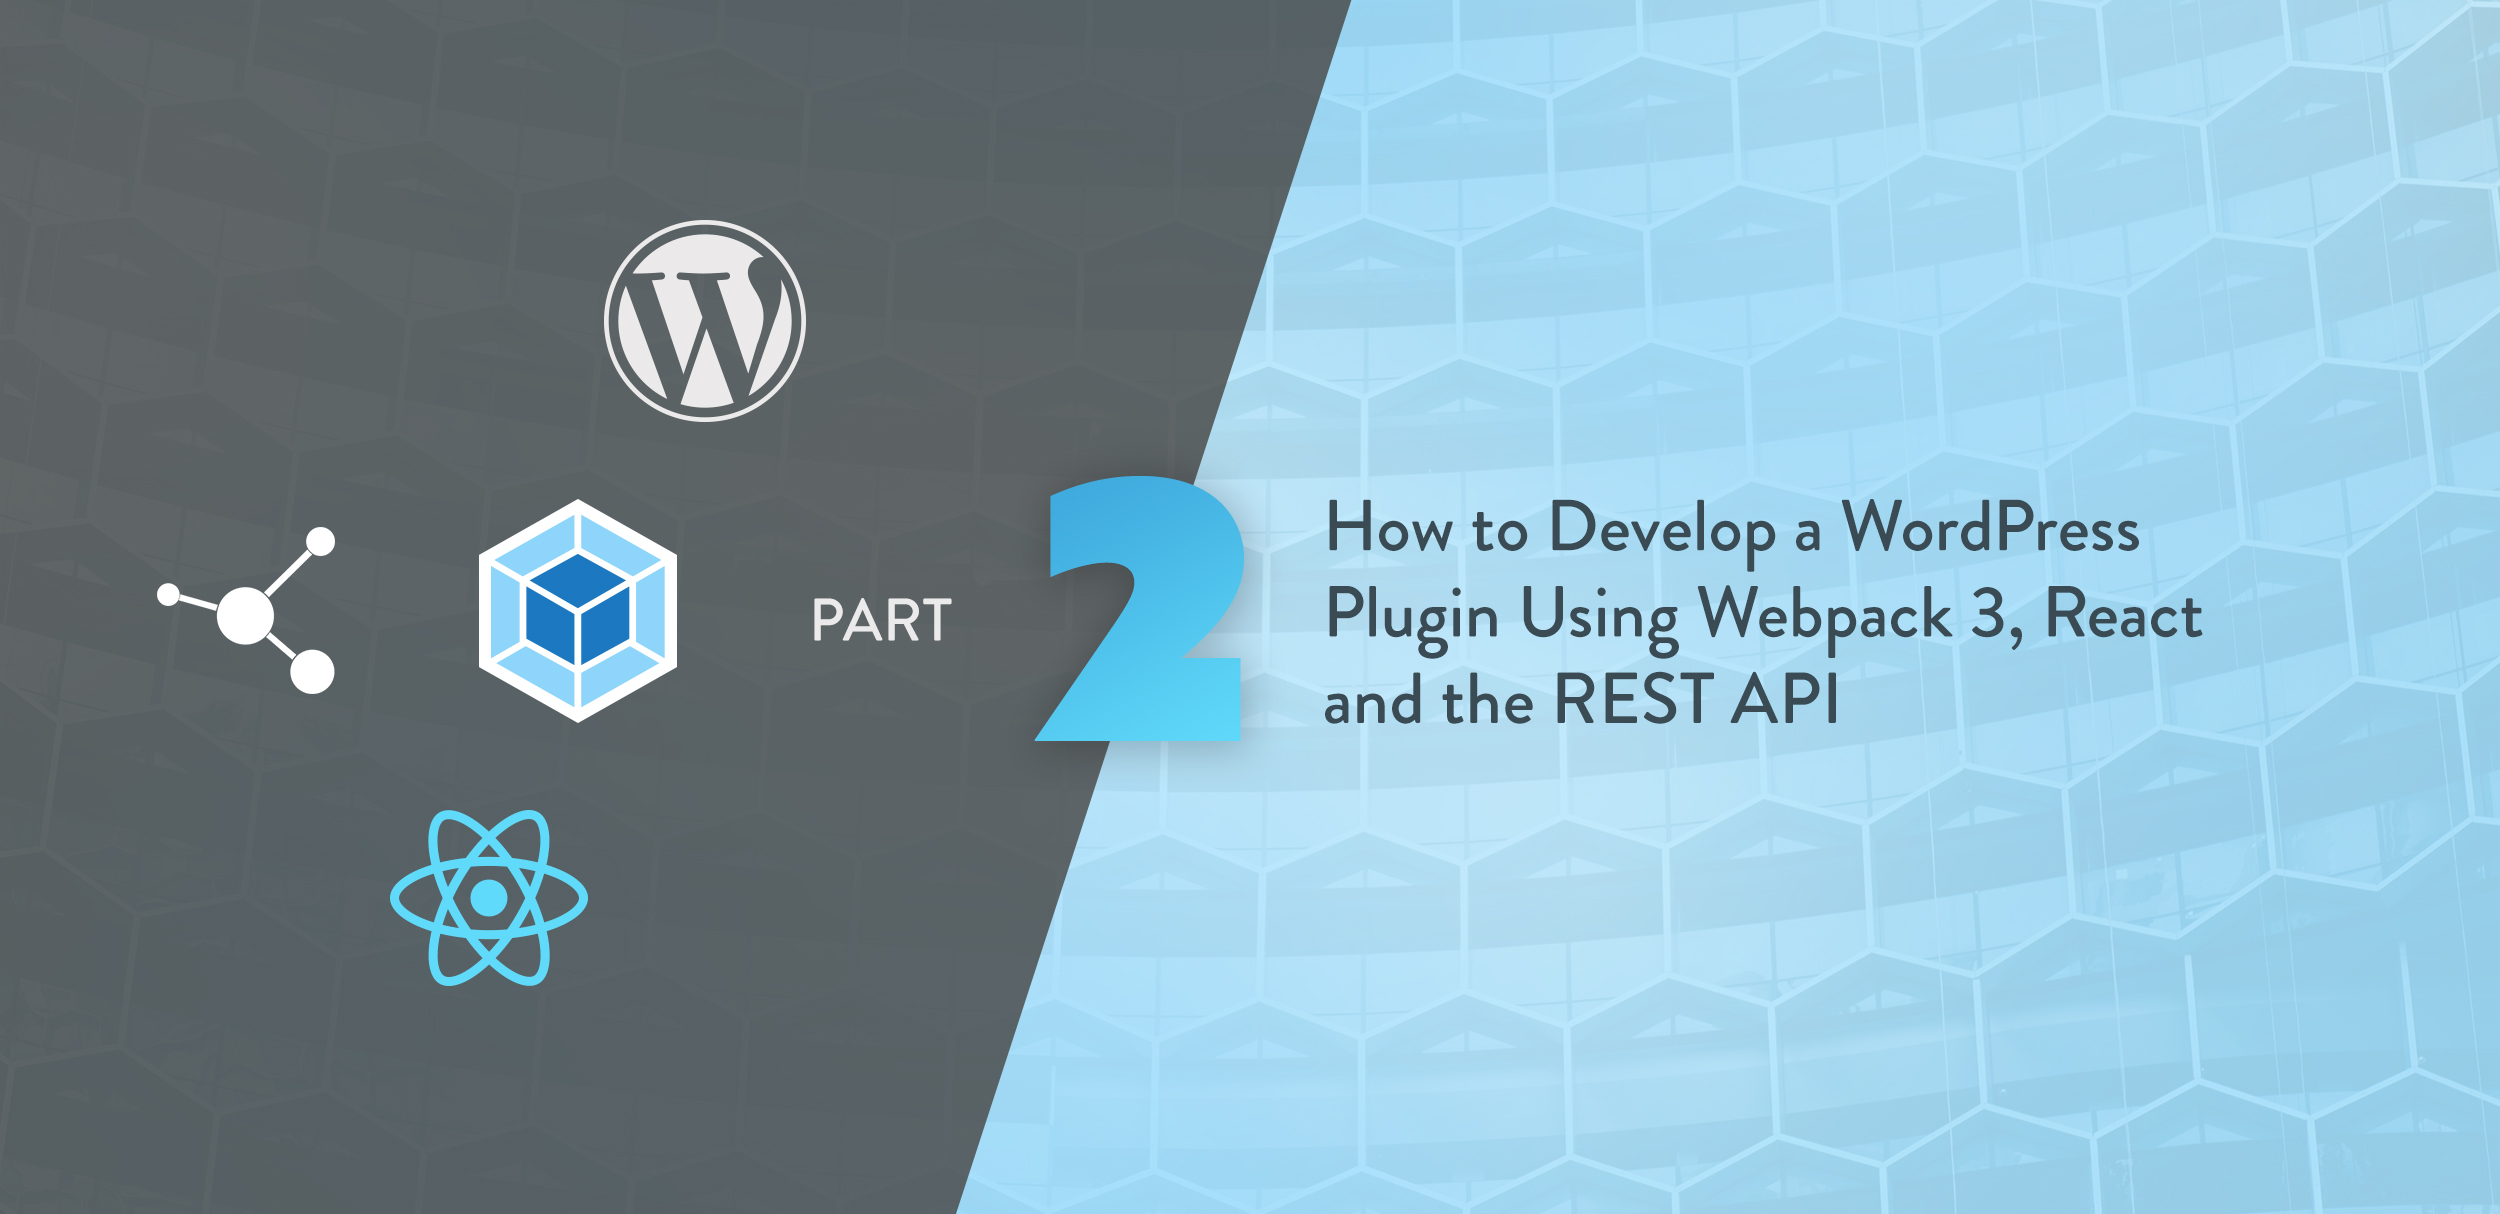 How to Develop a WordPress Plugin Using Webpack 3, React and the